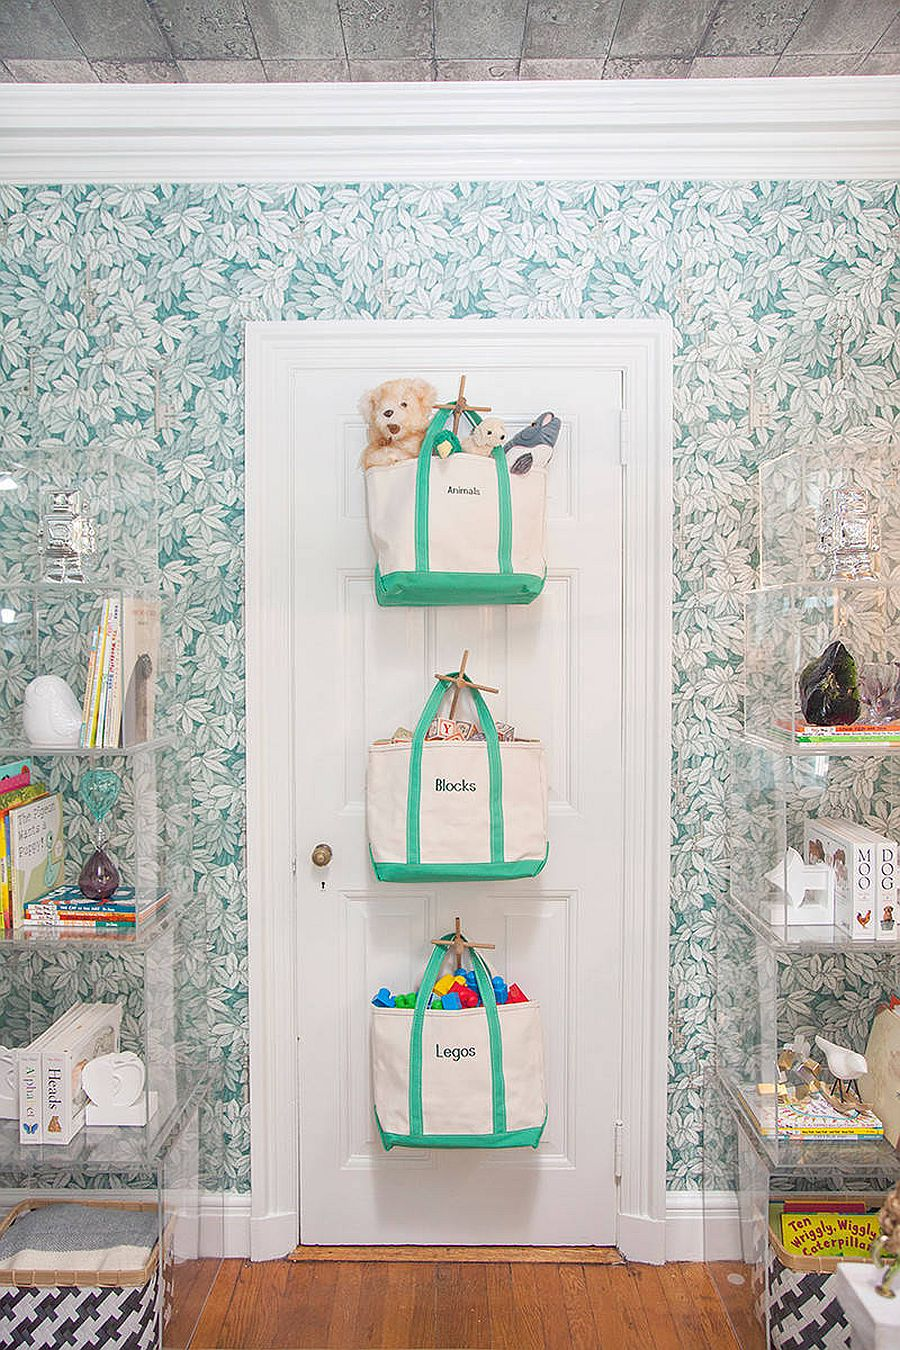 Bags hung behind the door offer a space-savvy way to store the toys and more